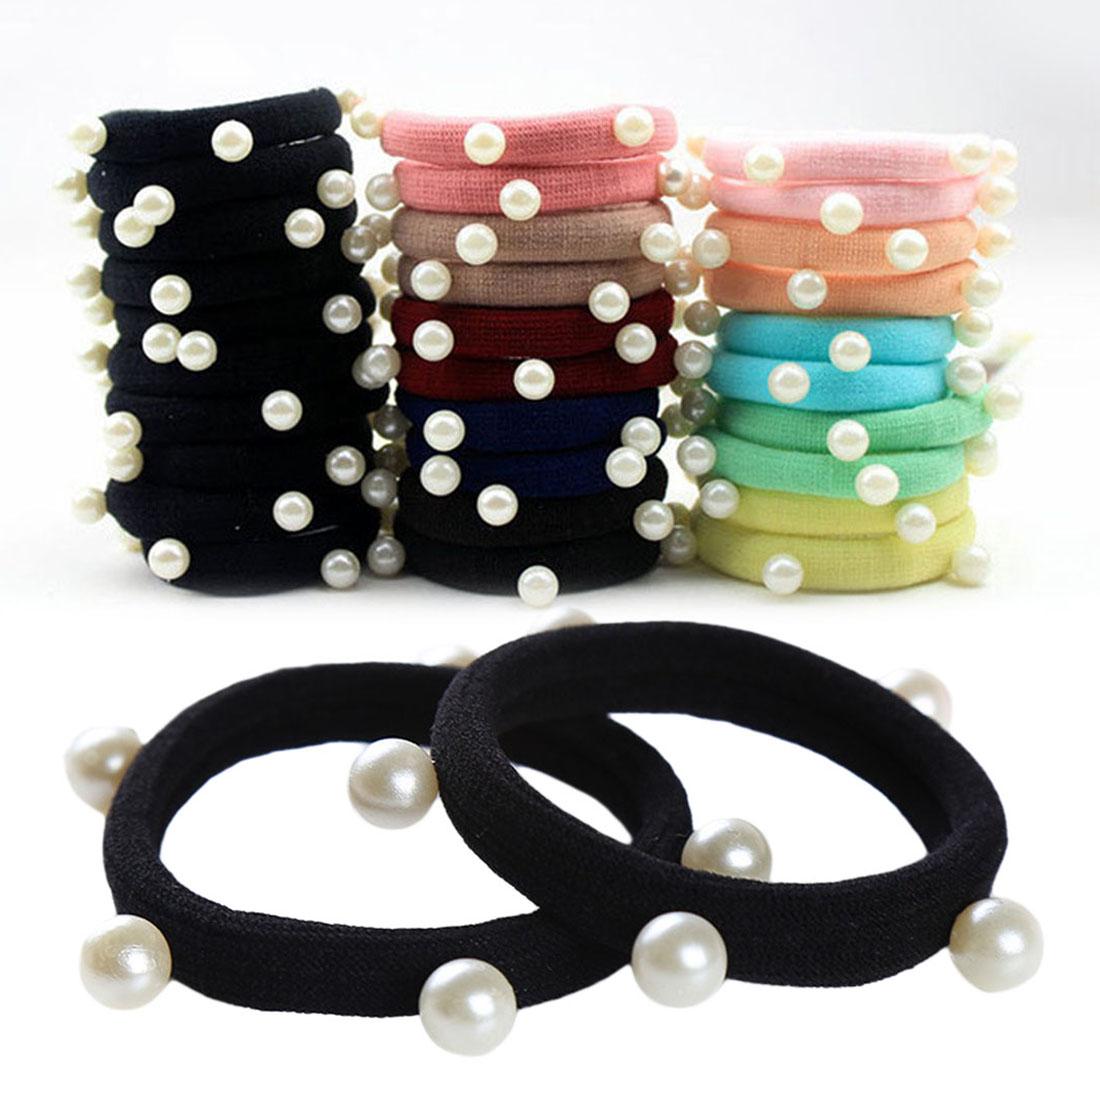 Women Girls' 10/20pcs Pearl Rubber Bands Elastics   Headwear   Seamless Gum Hair Hairbands Hair Accessories Rubberbands